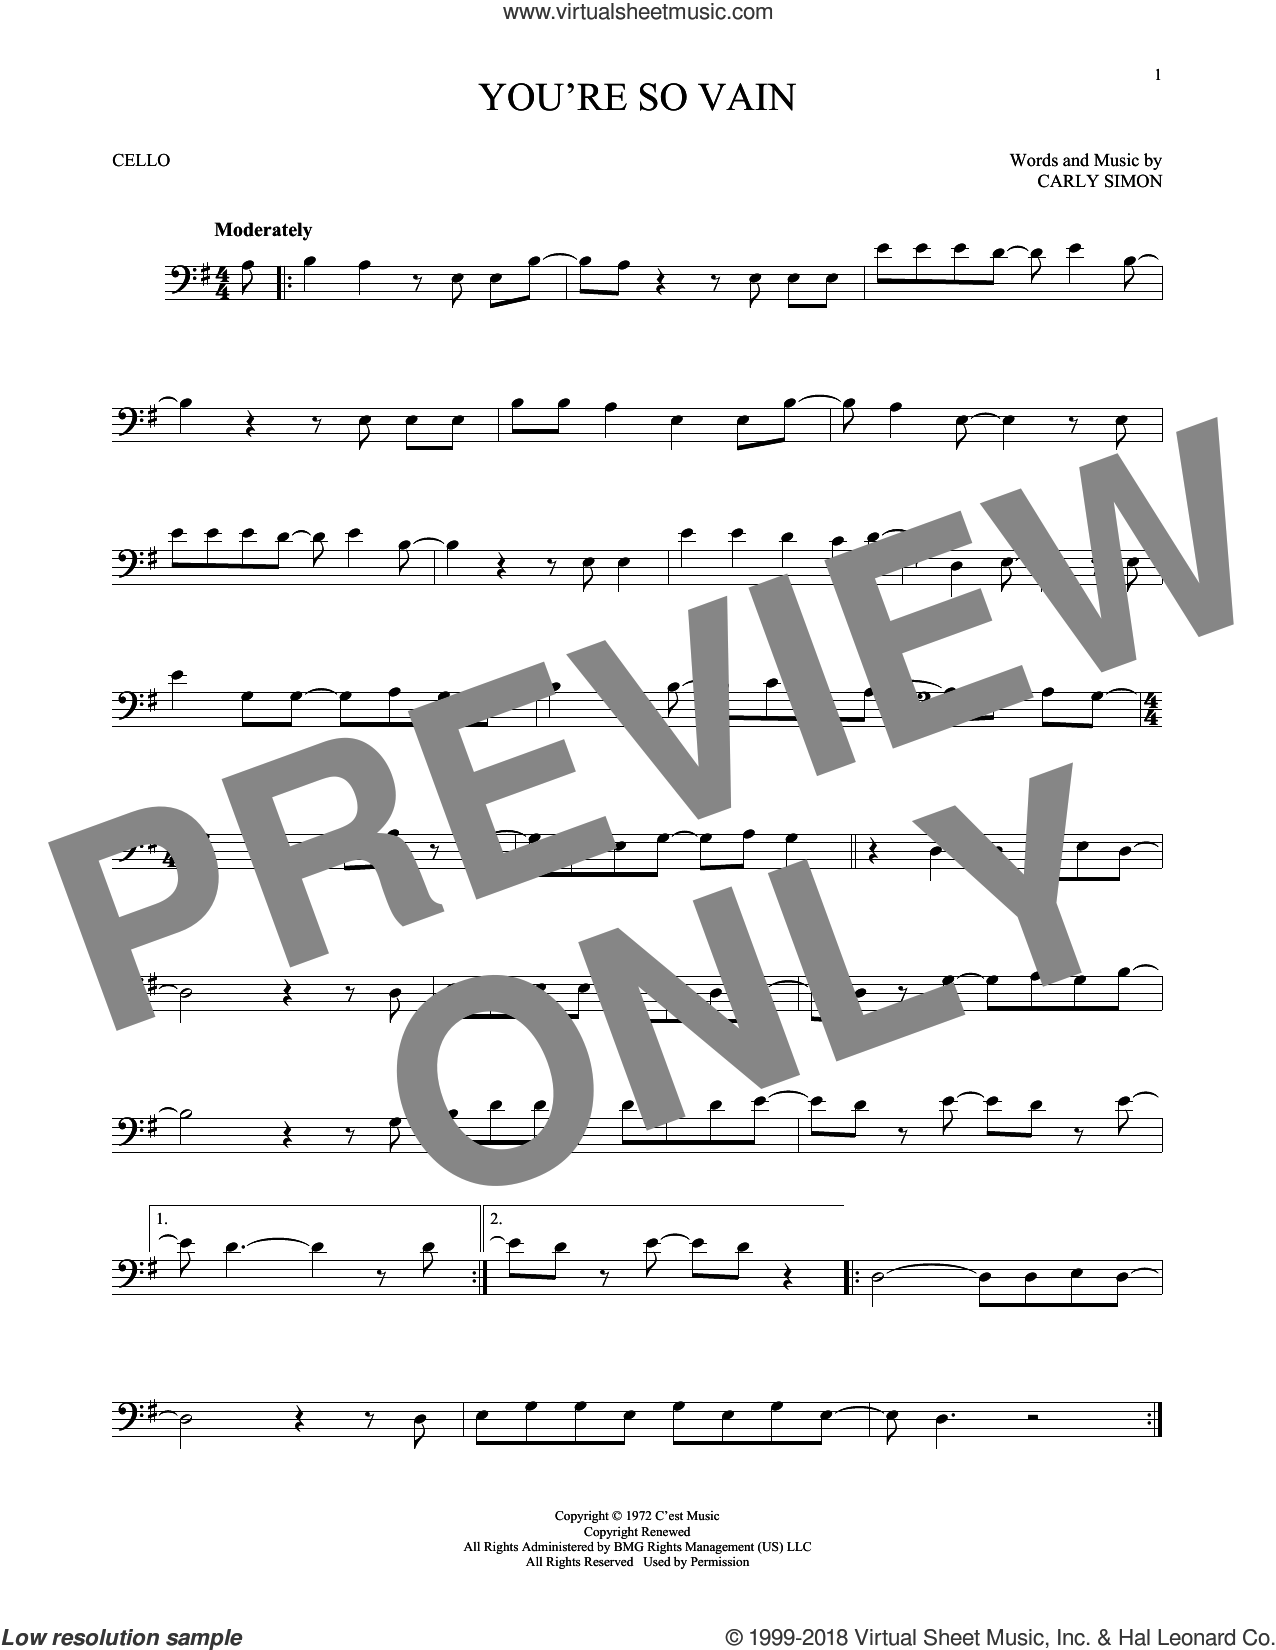 You're So Vain sheet music for cello solo by Carly Simon, intermediate